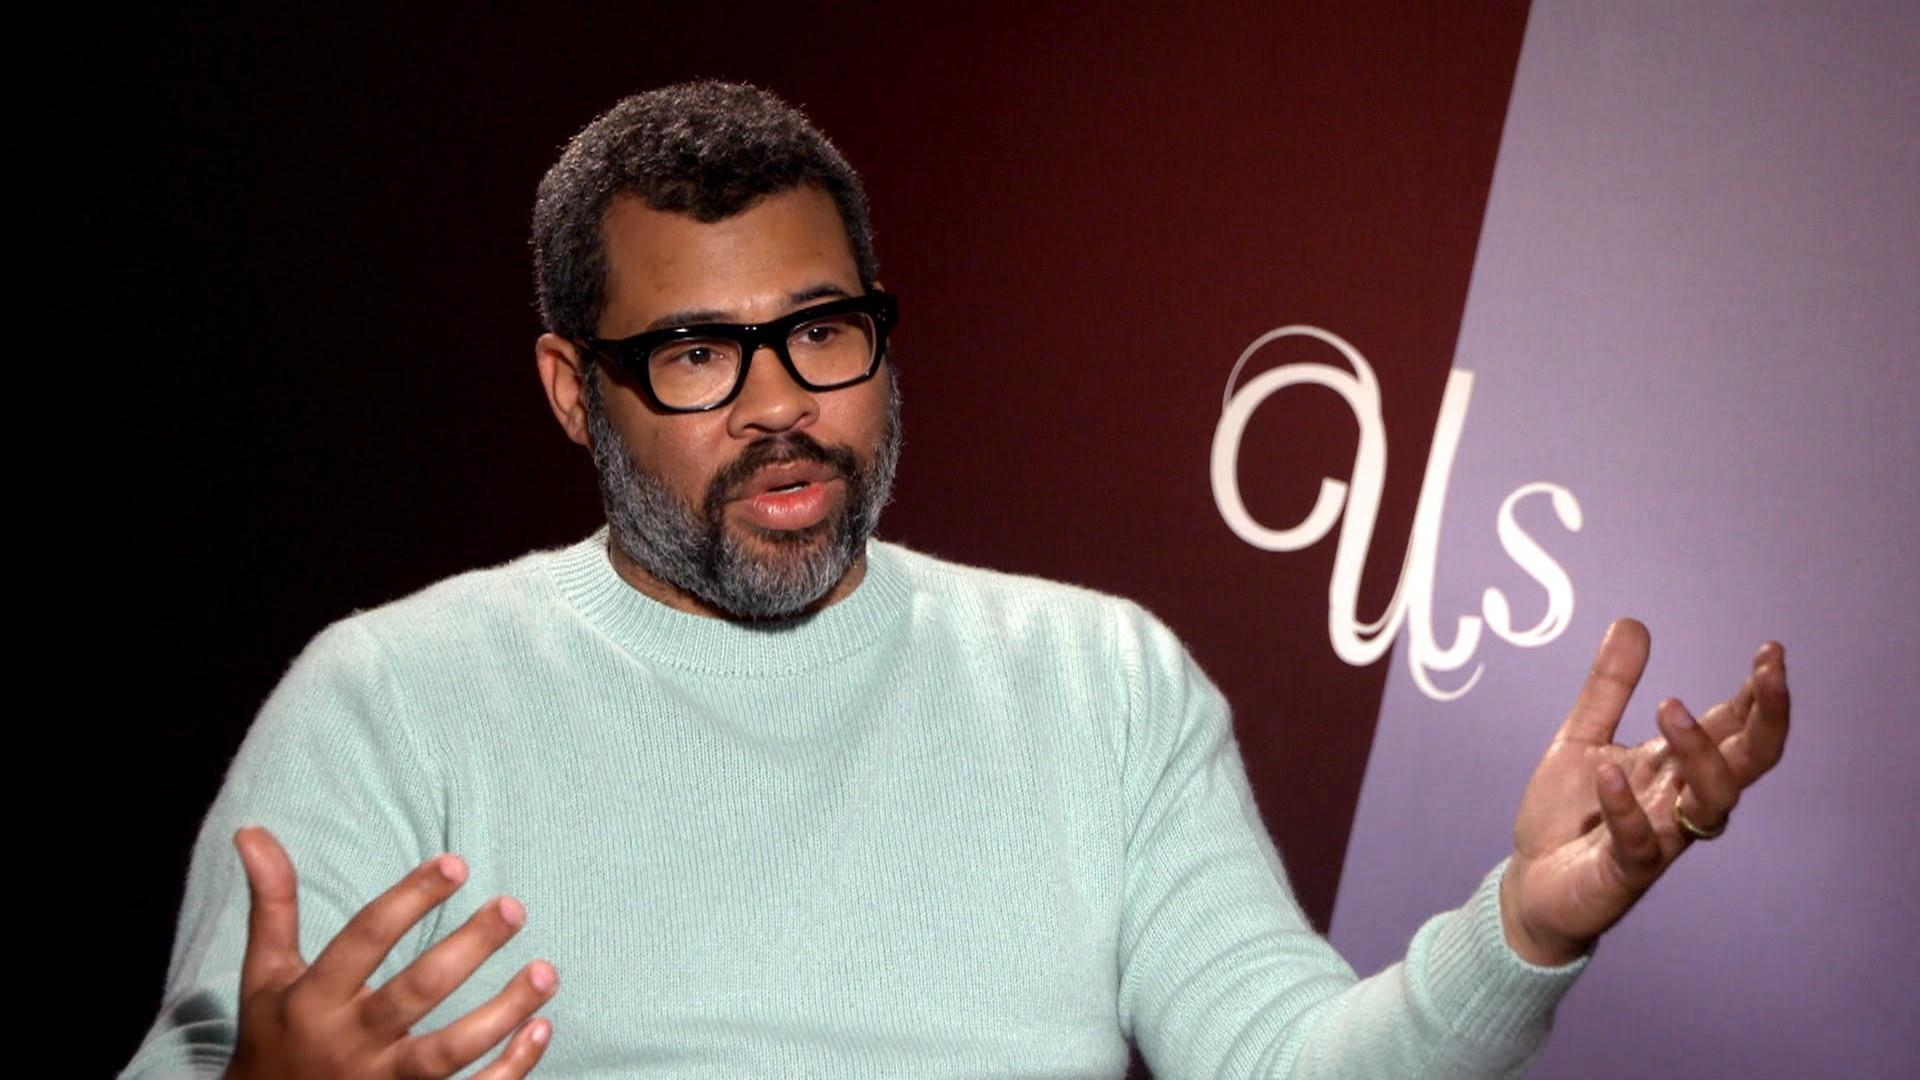 Jordan Peele explains new horror movie 'Us'